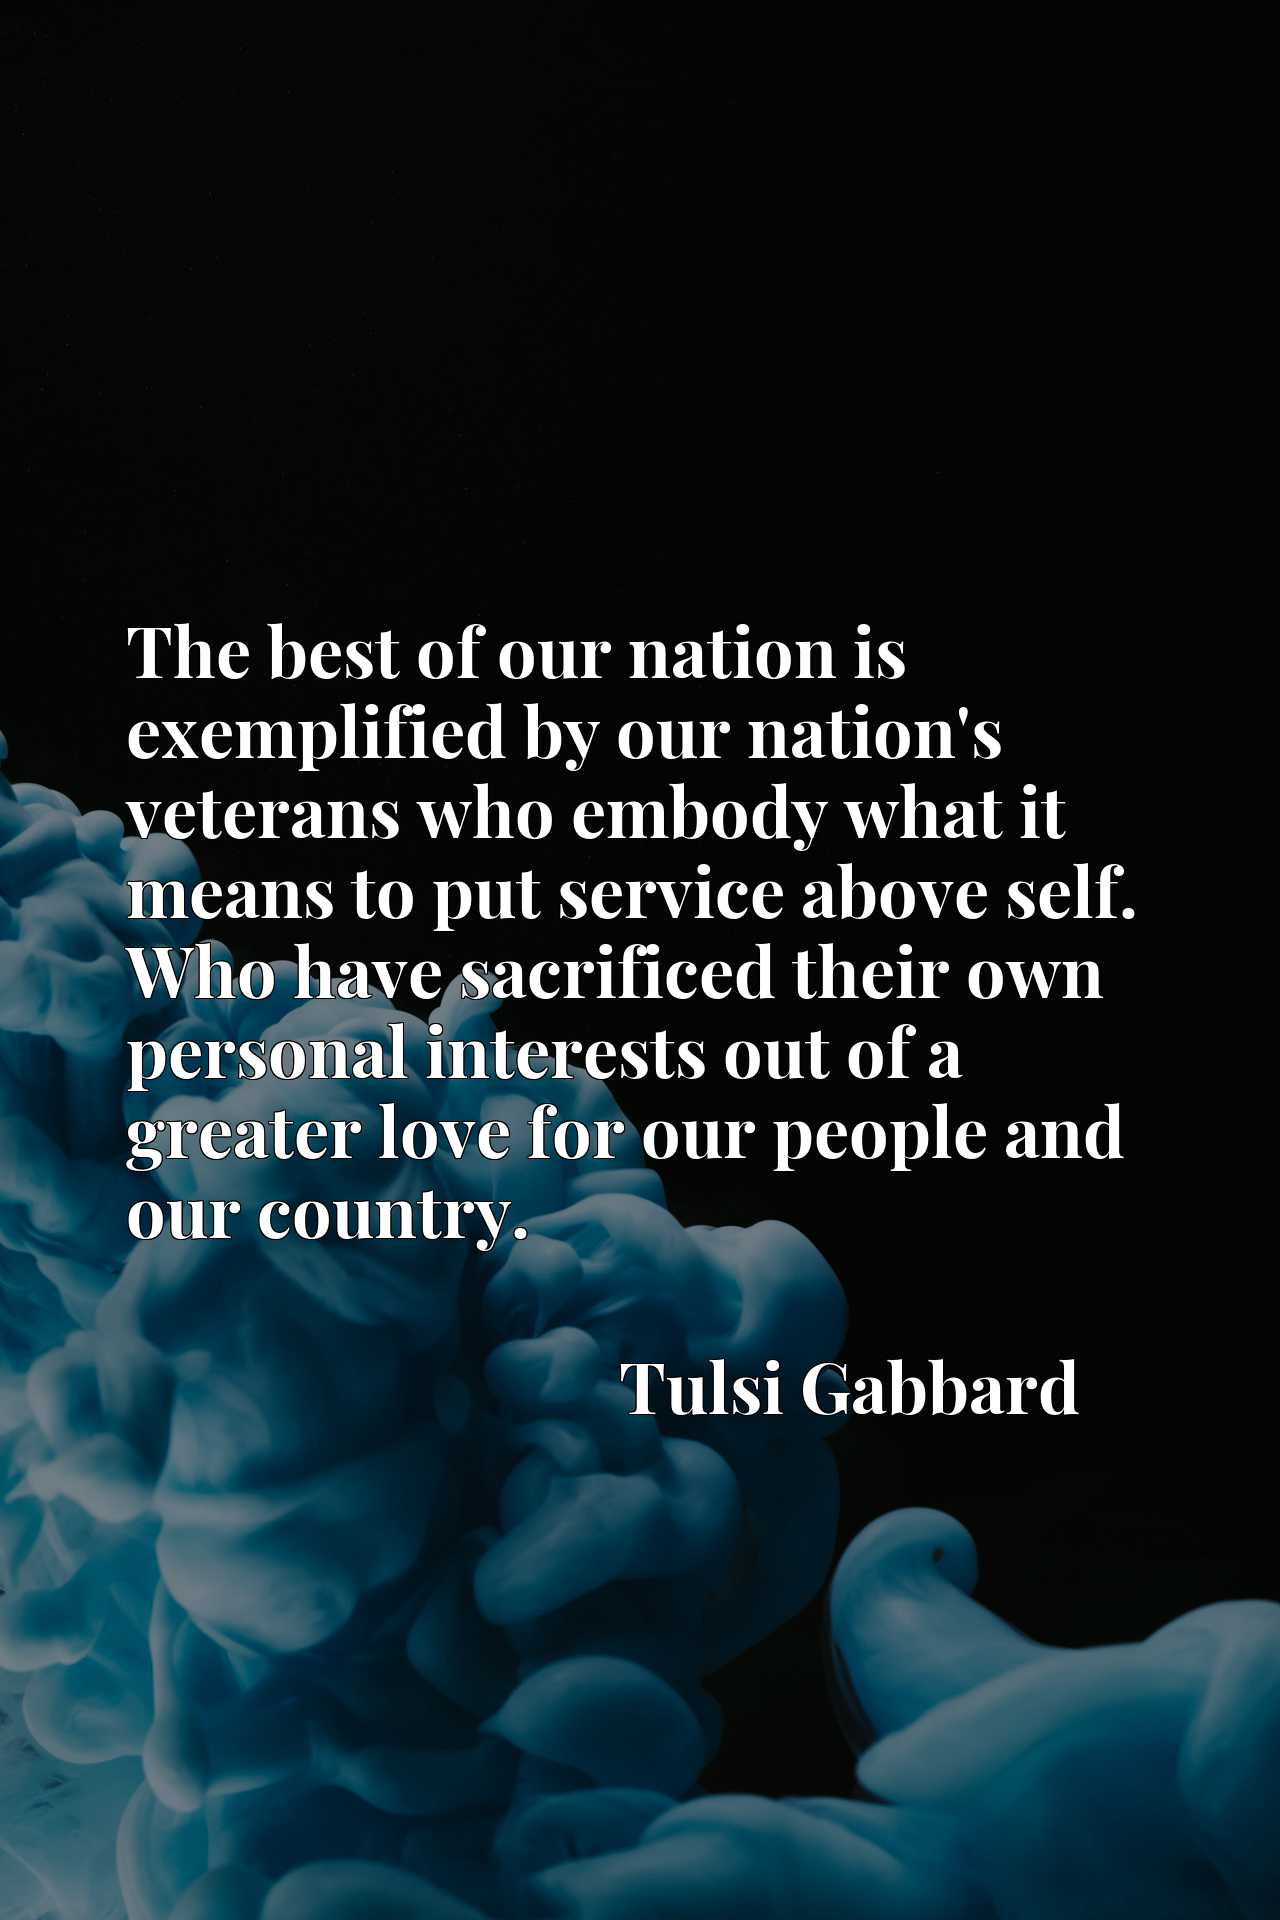 The best of our nation is exemplified by our nation's veterans who embody what it means to put service above self. Who have sacrificed their own personal interests out of a greater love for our people and our country.